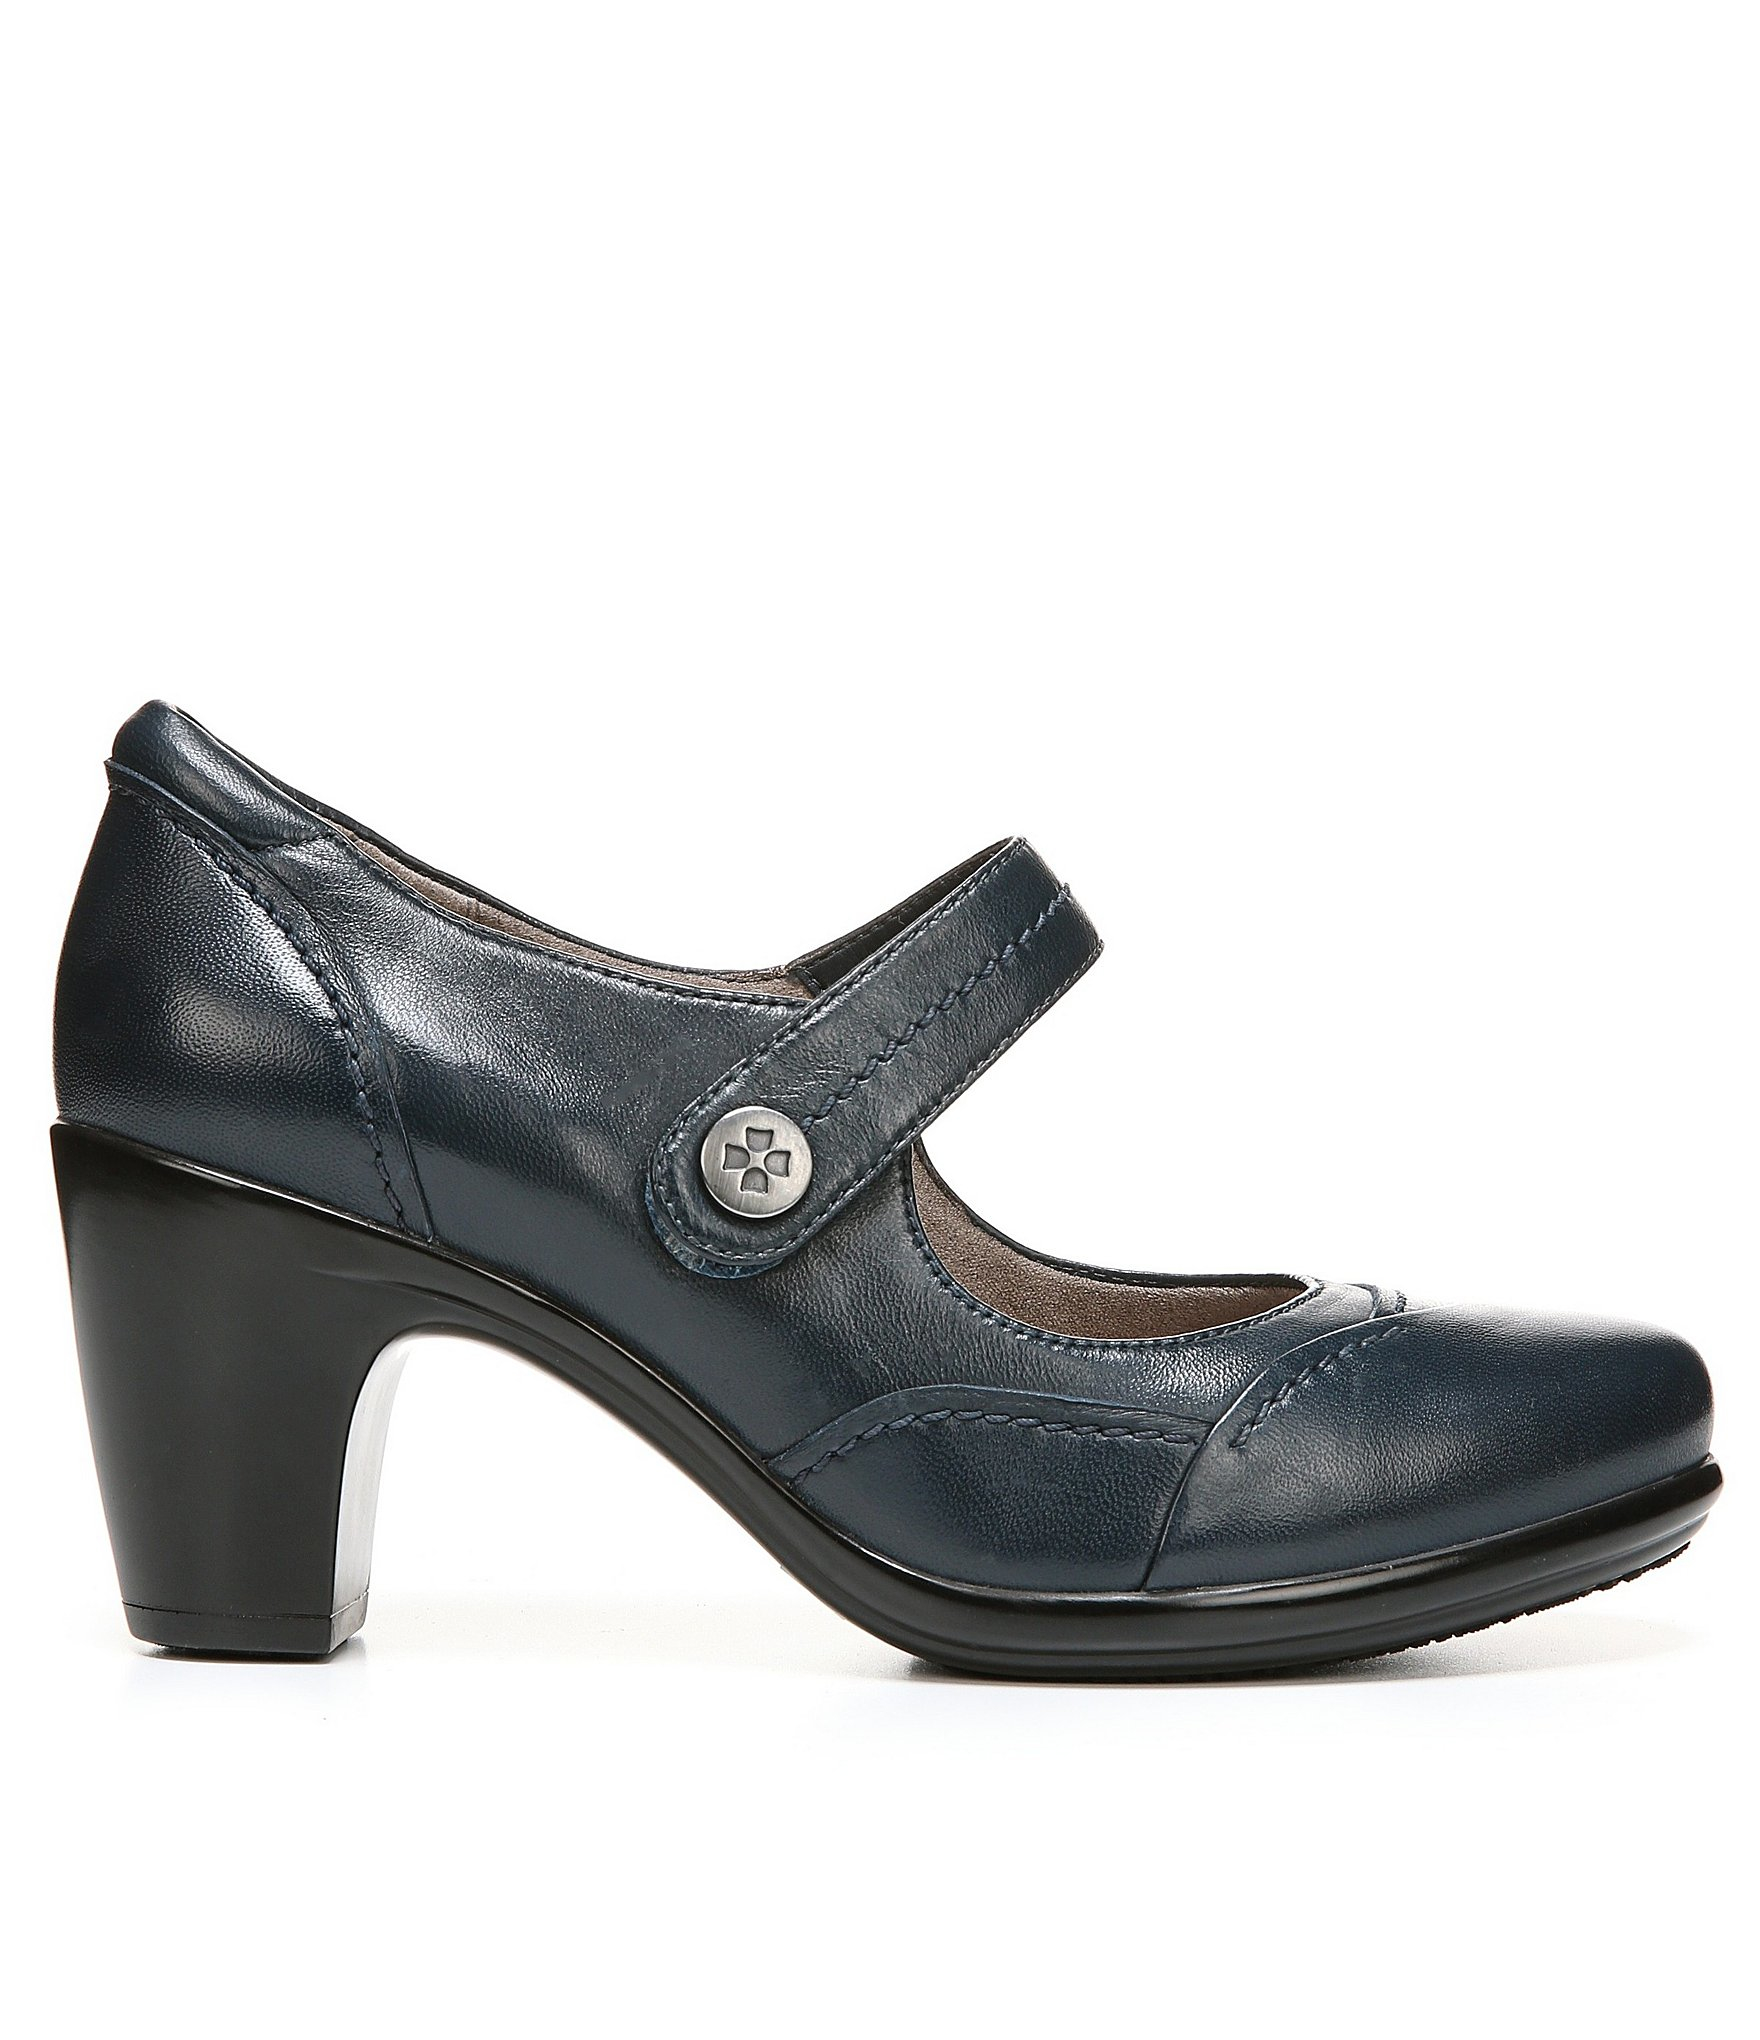 Gallery. Previously sold at: Dillard's · Women's Mary Jane Shoes